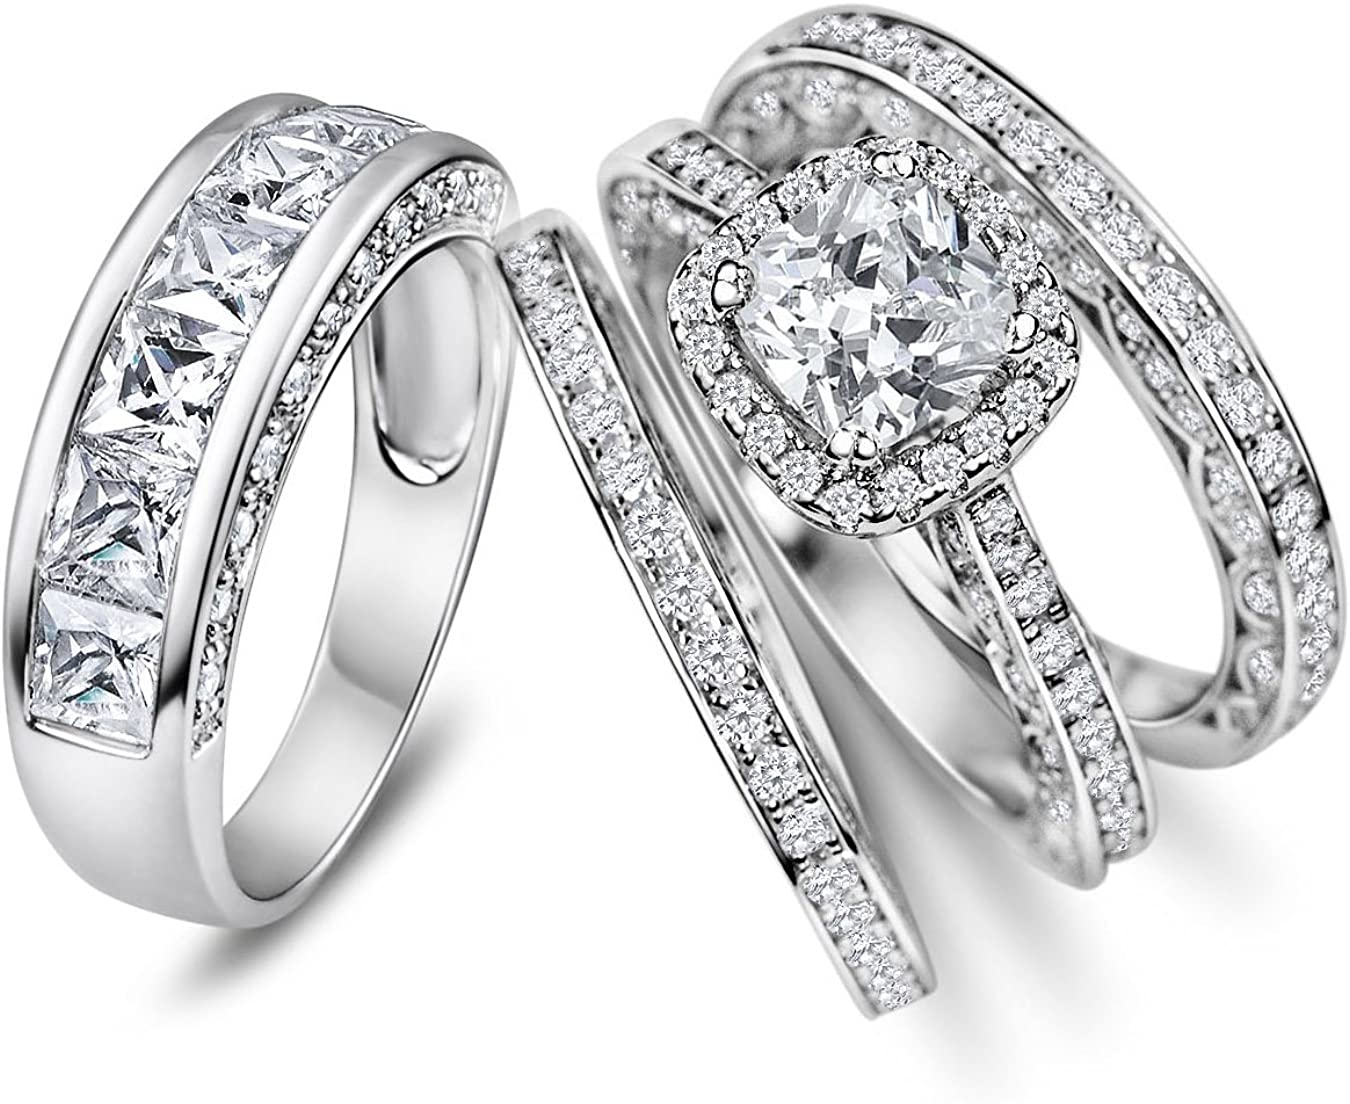 Sunee Jewelry And Gift His Hers Ranking TOP19 Matching Special sale item Cz Halo 4pc Cut Cushion